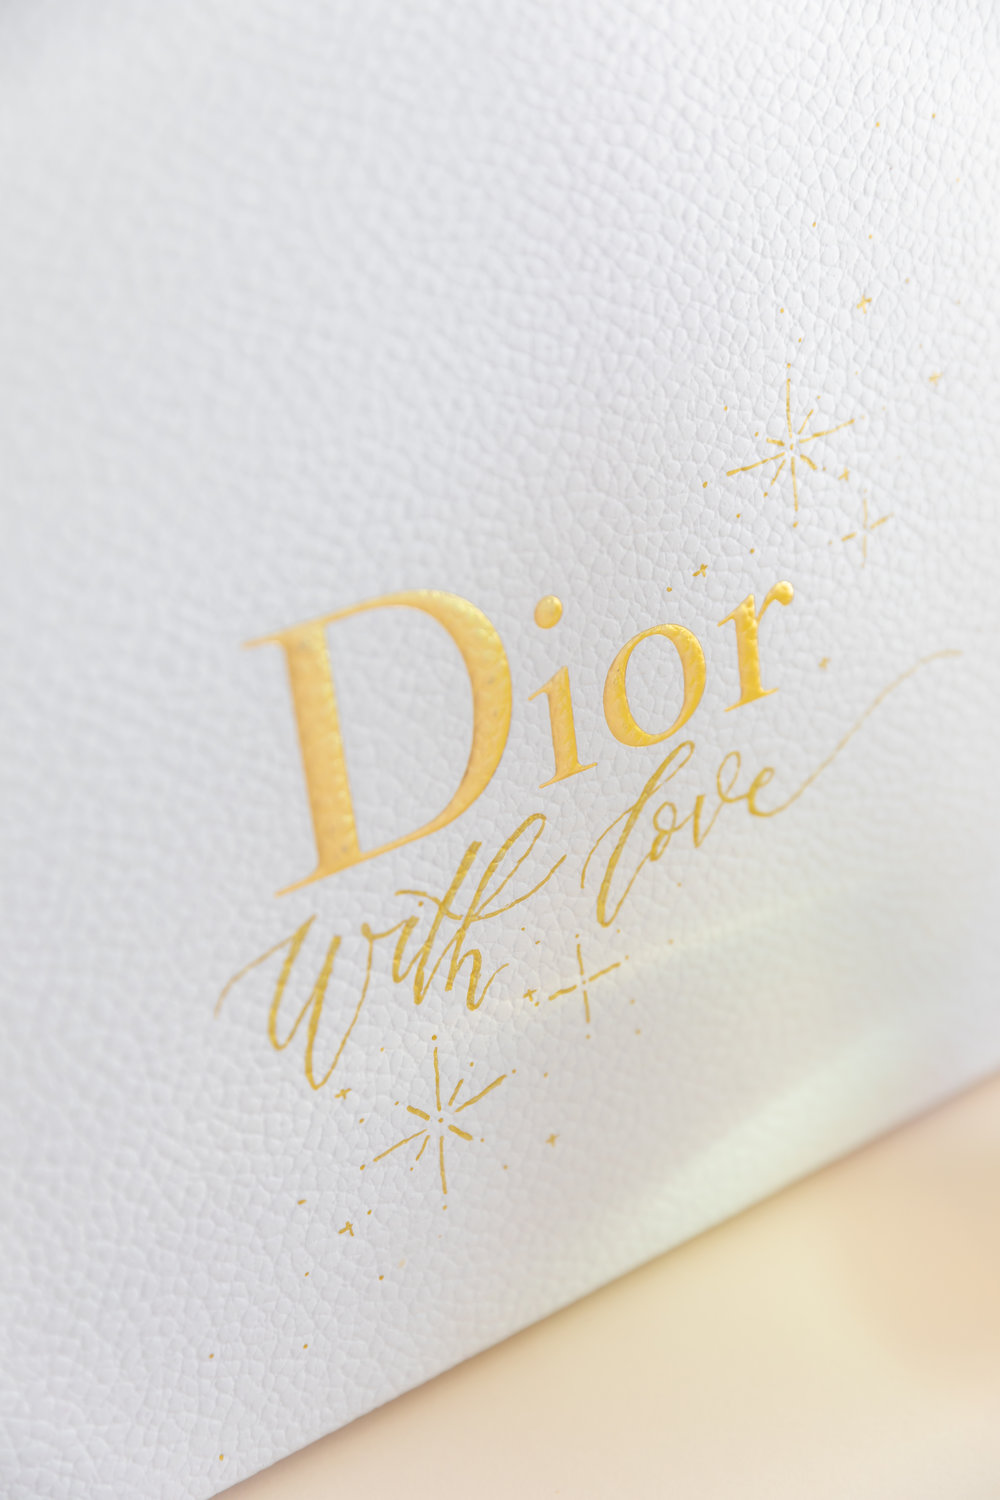 Hand painted calligraphy boxes for Dior Christmas event